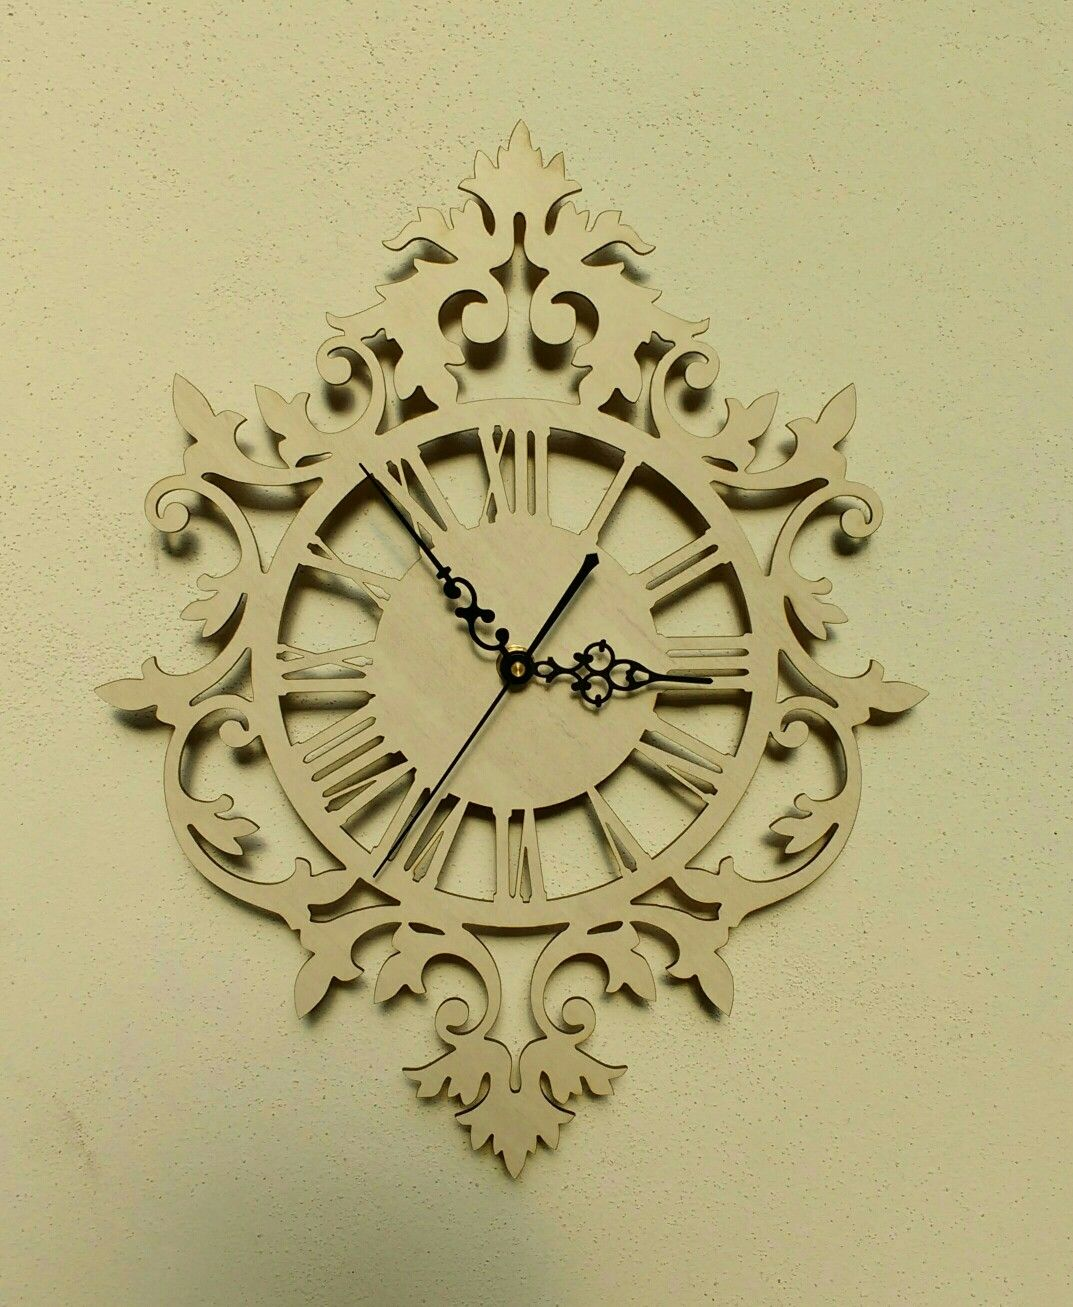 Reloj de pared calado / Laser cutting wall clock | Duvar saati ...